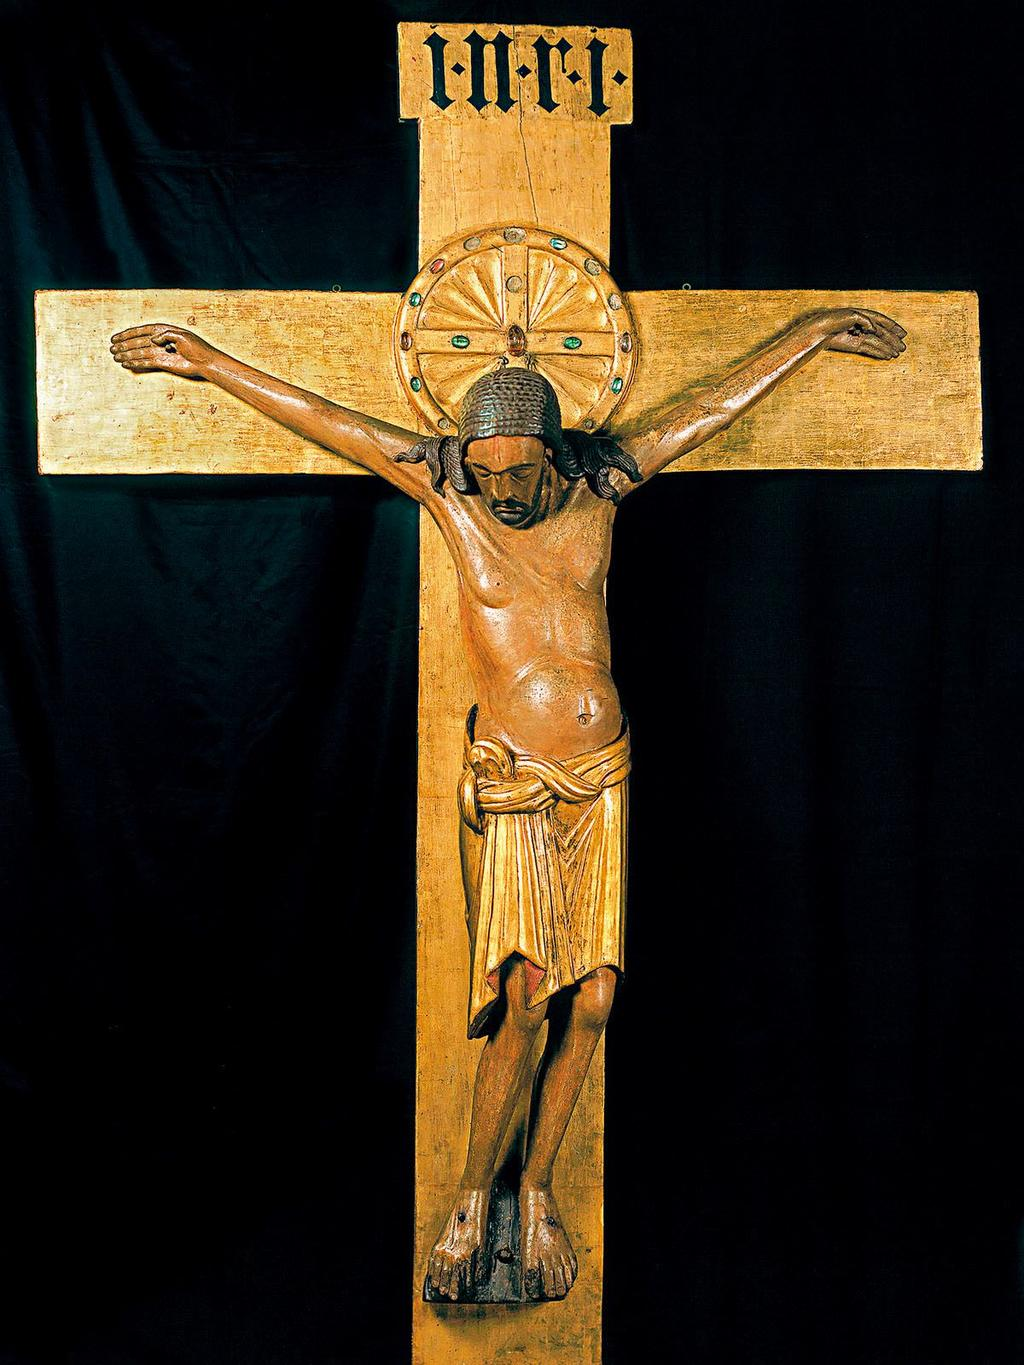 Ottonian Empire Gero Crucifix, Cologne Cathedral, Cologne Germany 970 Freestanding statuary was revived after a 500 year absence This cross was over 6ft tall Carved in oak, then painted and gilded in